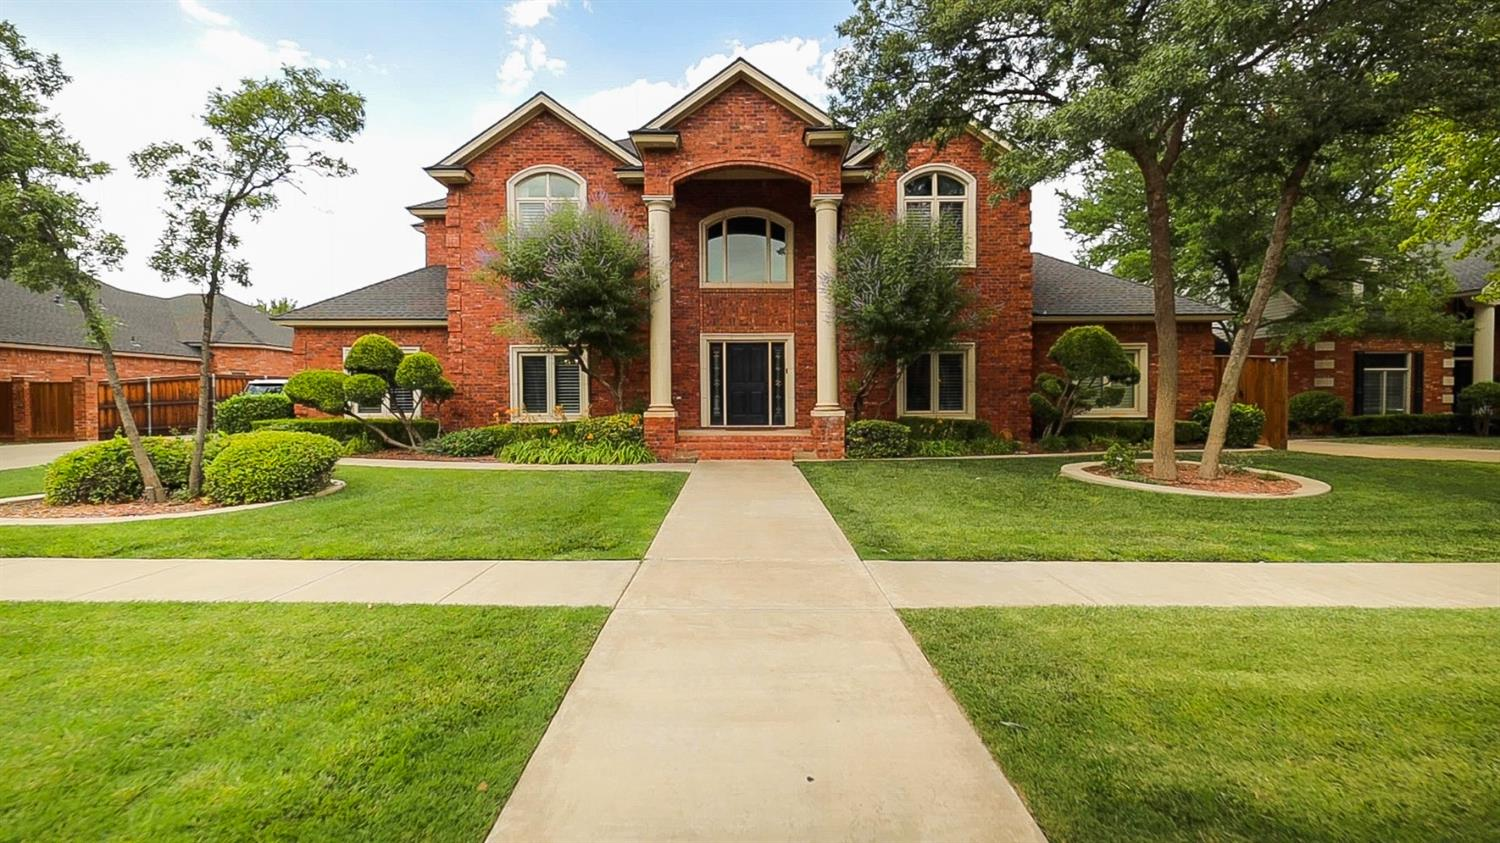 **MOTIVATED SELLER** Gorgeous 5/5/3 home with basement/media & game room and pool! As you enter this beautiful home, you will notice an amazing spiral staircase stretching toward a soaring 20' ceiling and new flooring throughout the first floor. The living room offers a gorgeous paneled coffered ceiling. The spacious, open-concept kitchen features beautiful new granite countertops & backsplash, breakfast bar and island. The isolated master suite provides a tray ceiling, private access to an outdoor living space, double vanities, airflow tub, separate shower & large walk-in closet. The 3 secondary bedrooms are each isolated with their own private baths. This home also offers a beautiful office space right off of the entry. The spacious basement features its own heating and air system. The amazing backyard includes a  large covered patio, in-ground pool, hot tub & storage building.